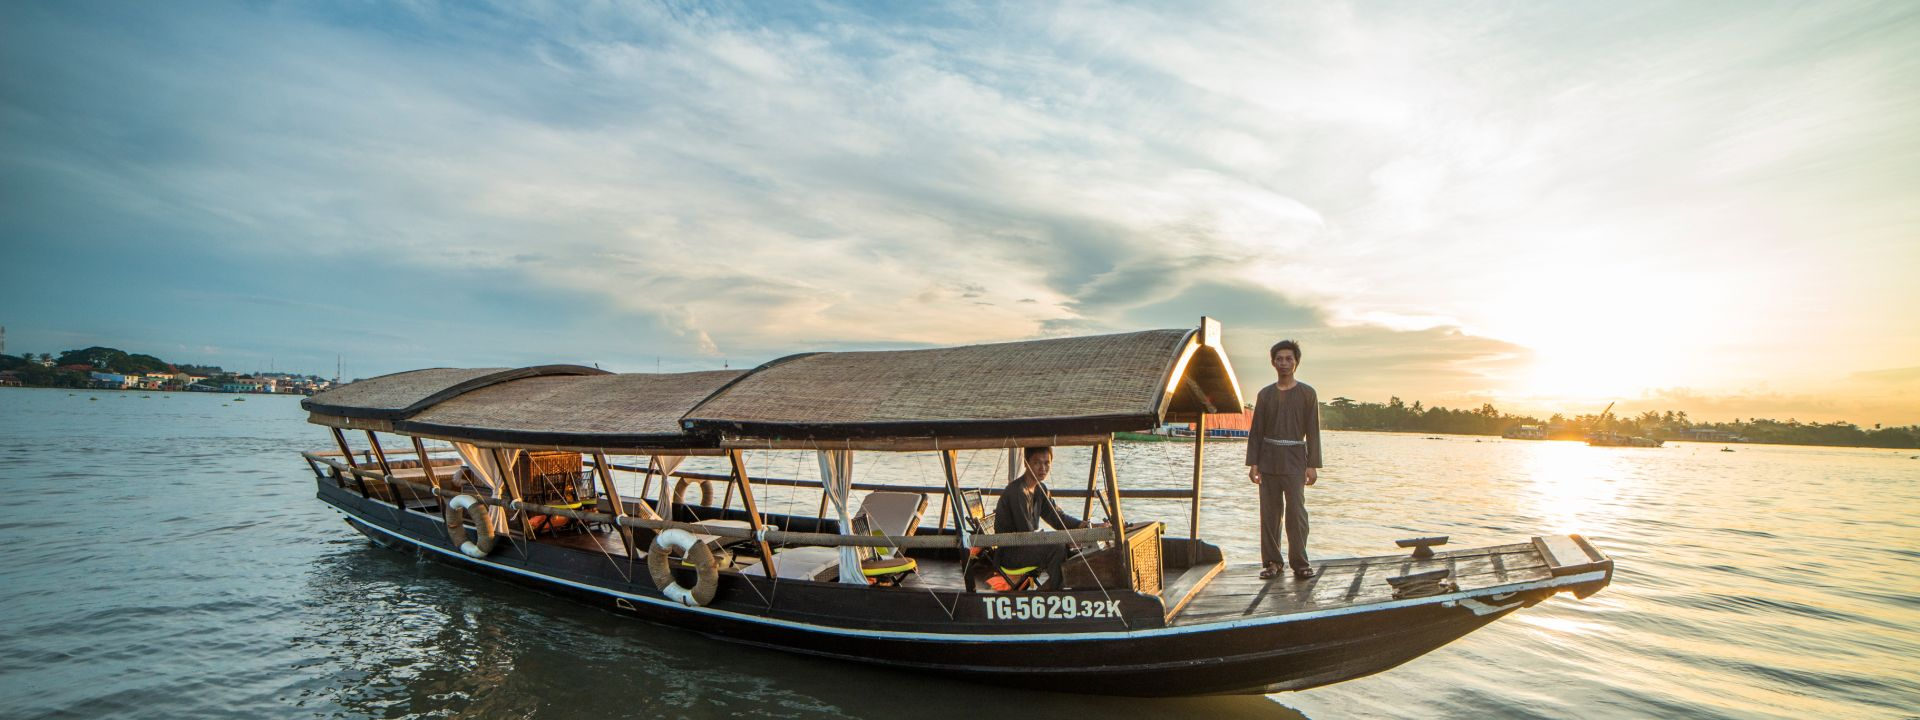 Scenic Victoria Boat Cruise Mekong 4 days